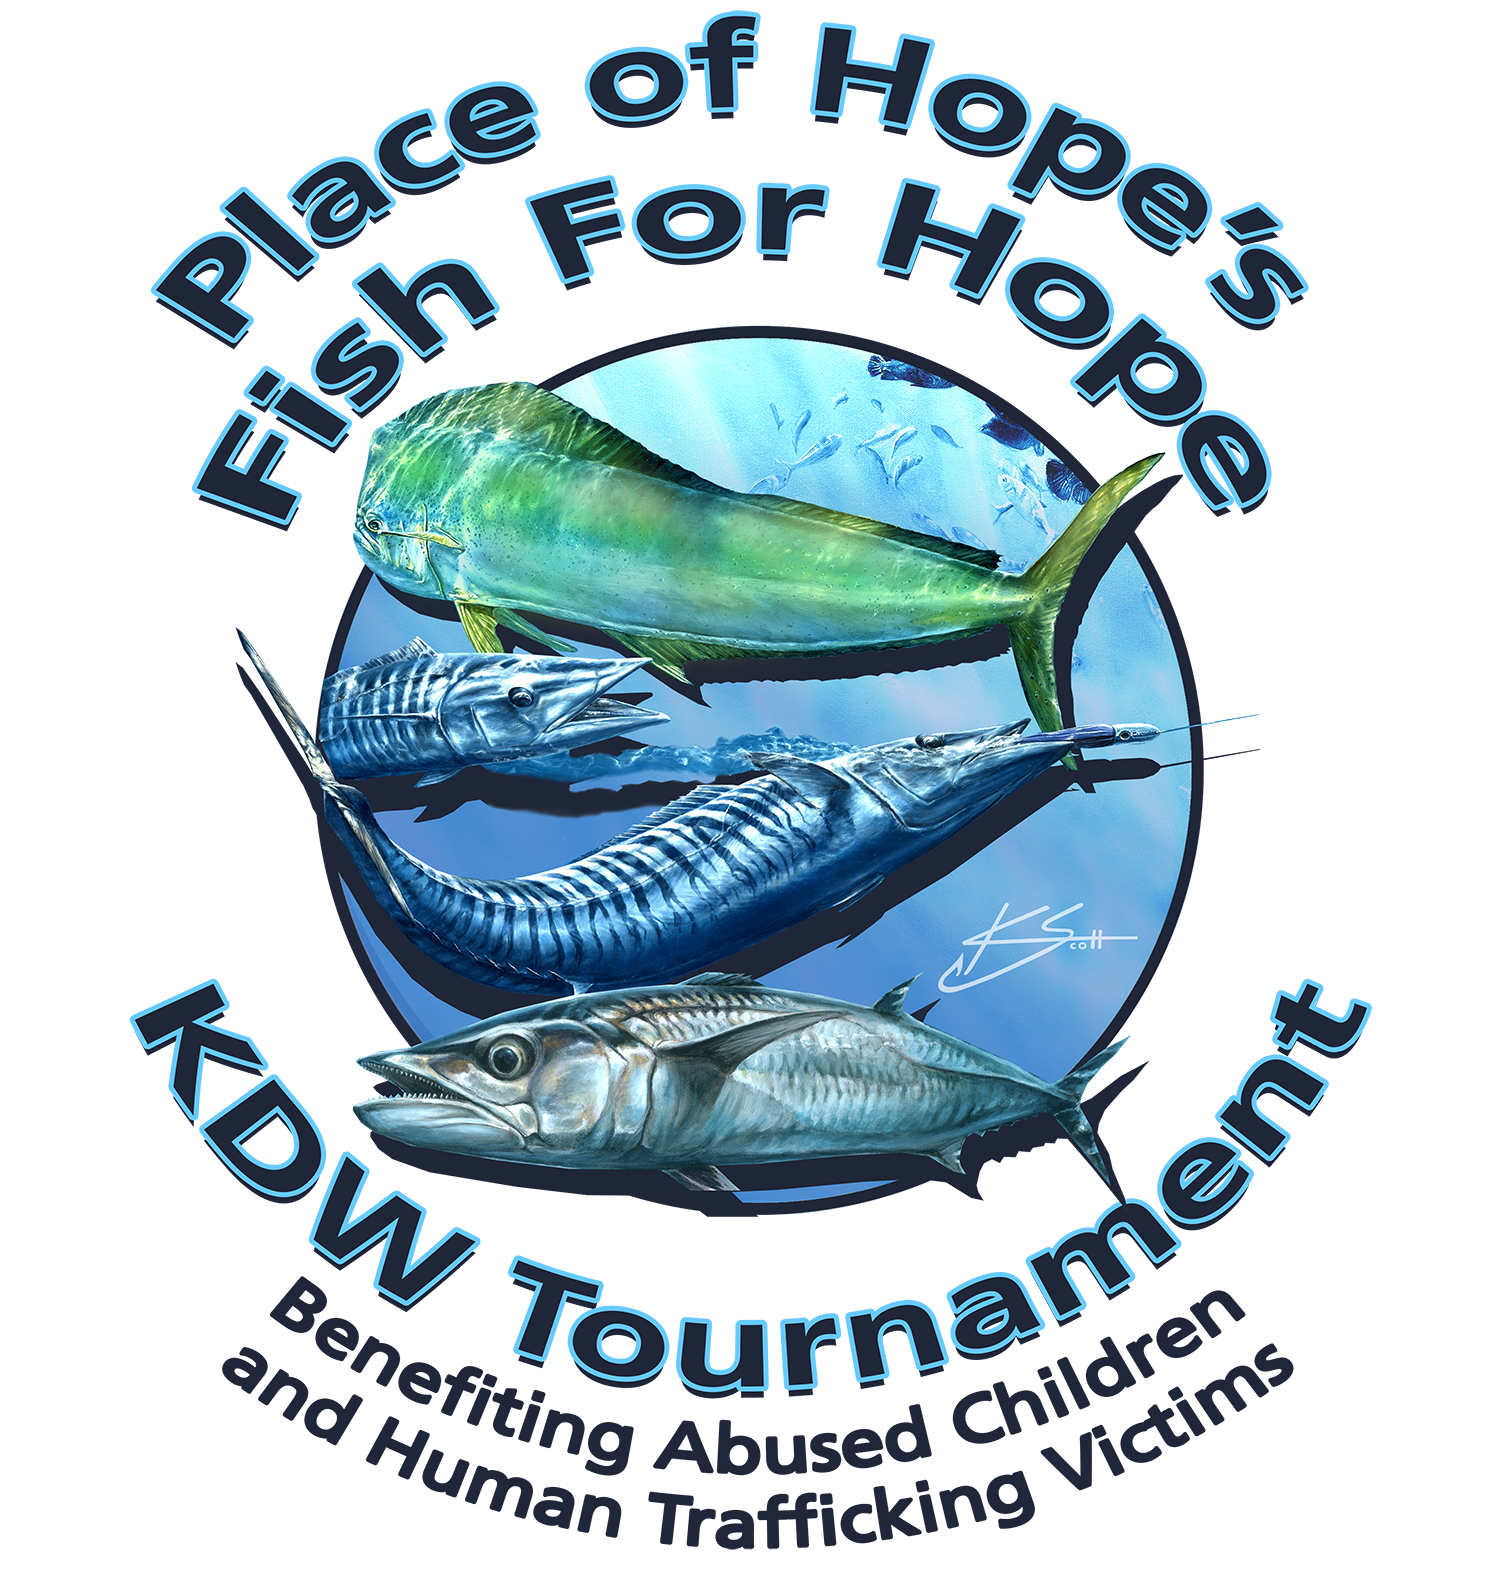 2018 Fish For Hope Tournament LOGO